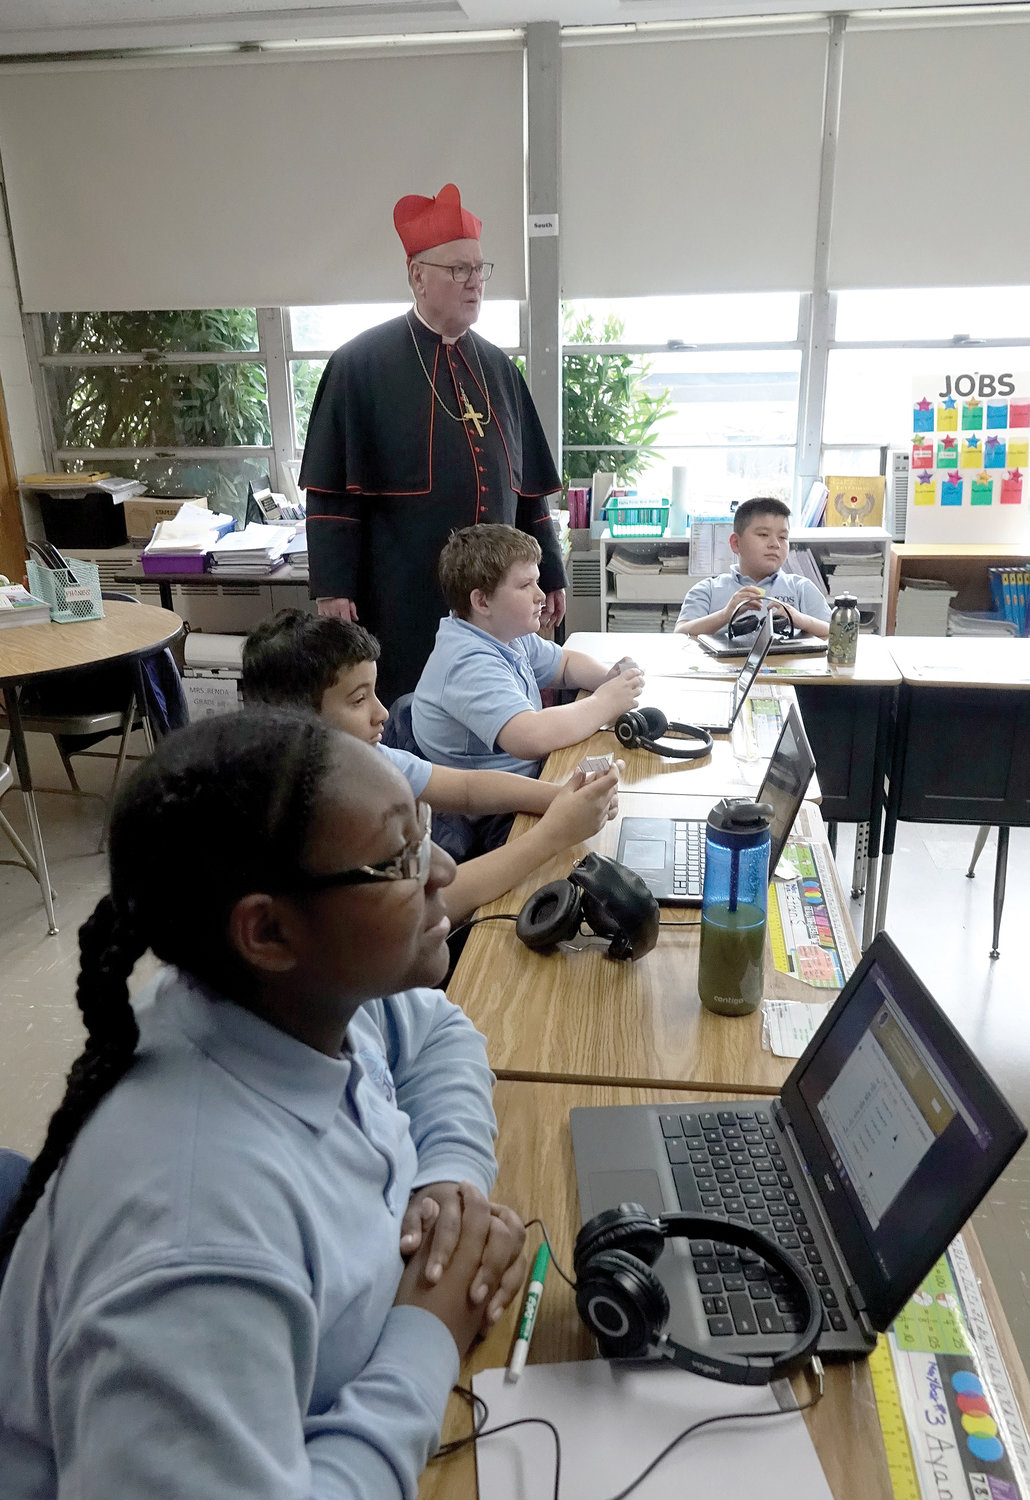 Cardinal Dolan tours the computer class at the John Cardinal O'Connor School in Irvington Jan. 27, the second day of National Catholic Schools Week.